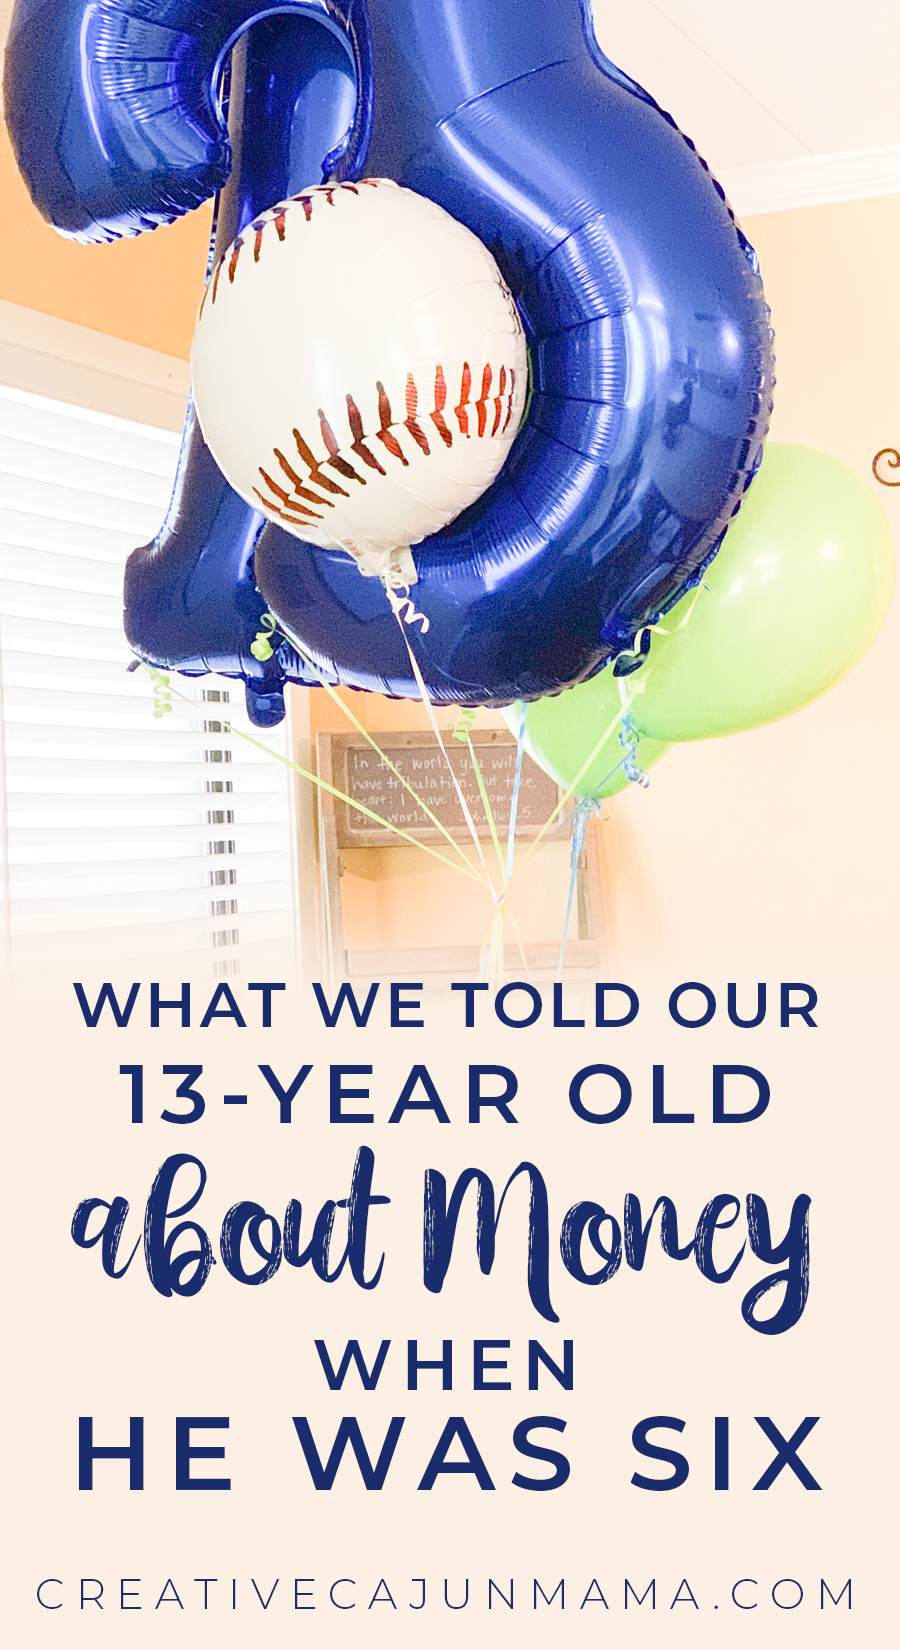 What We Told Our 13-year Old about Money When He was Six